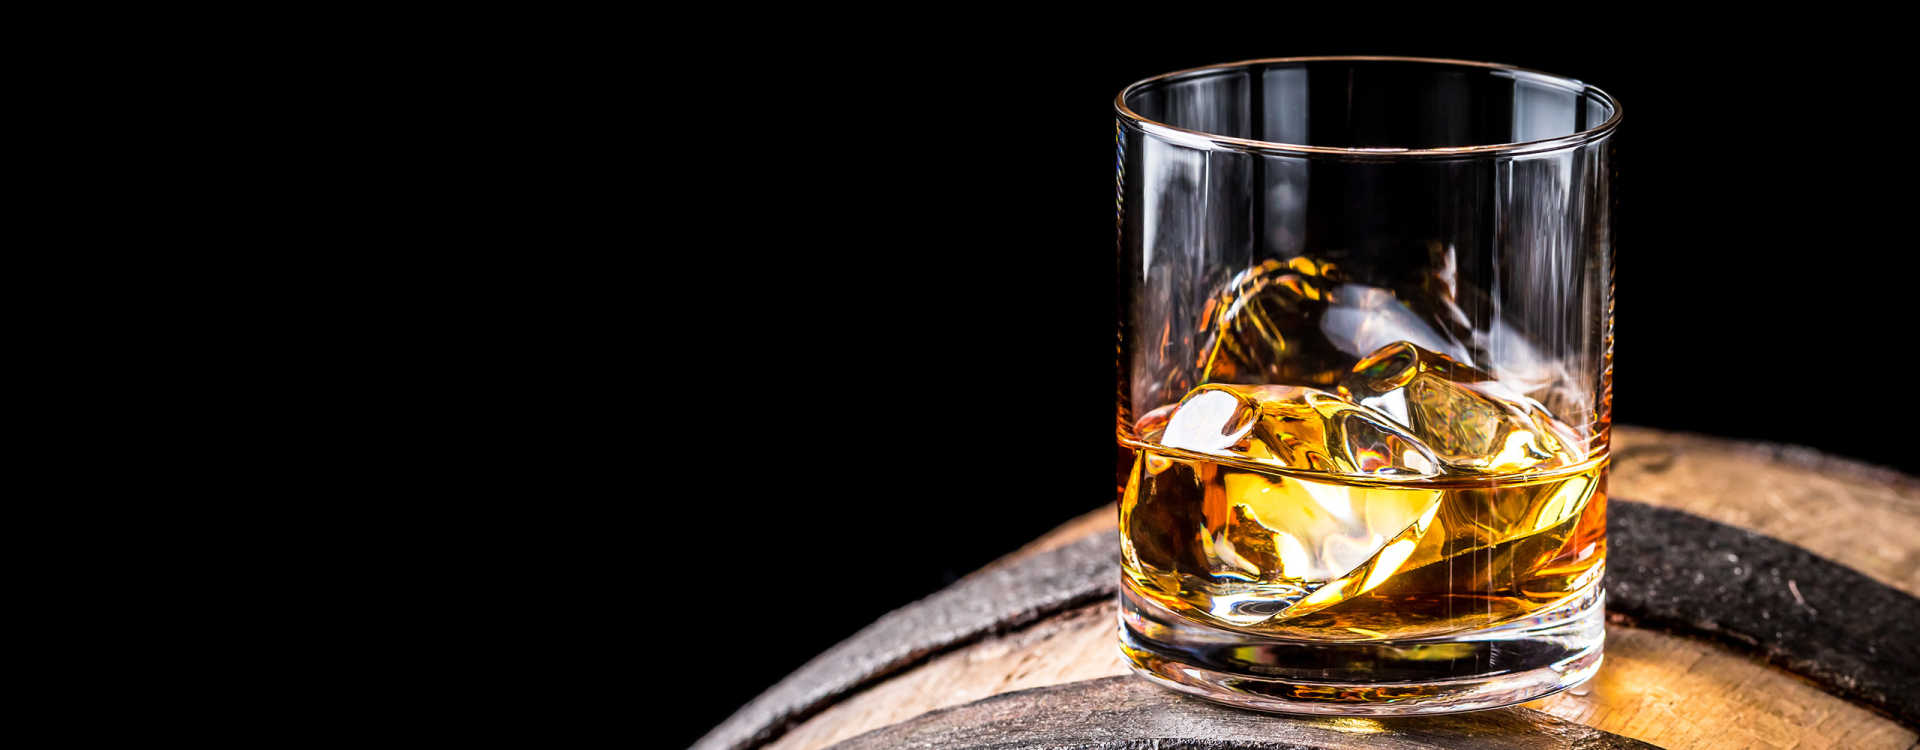 Image for Canadian Whisky content section